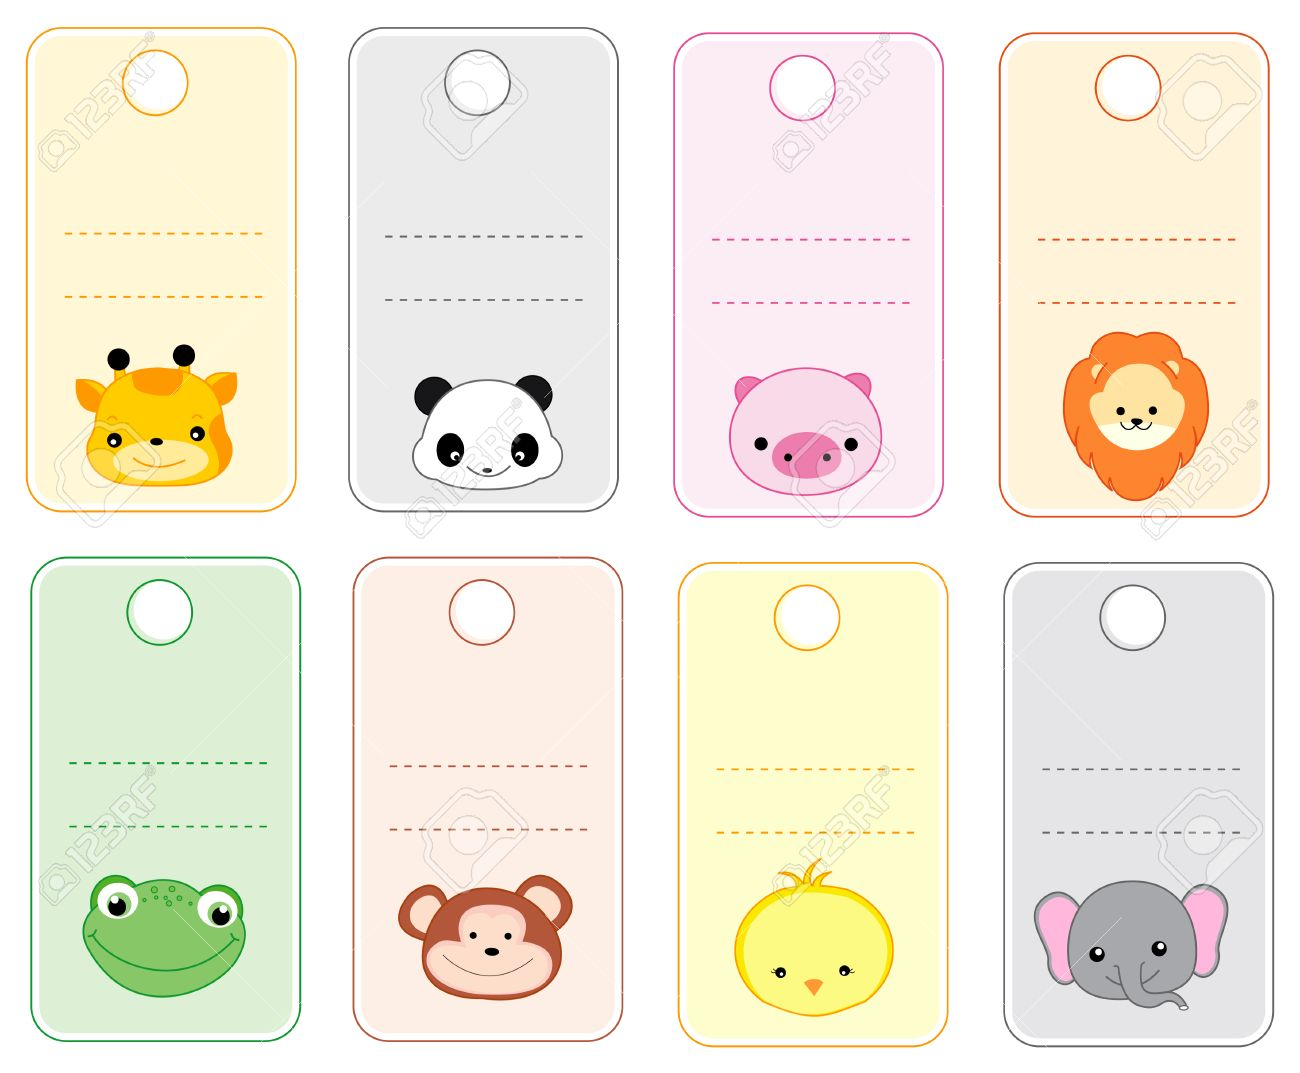 image about Printable Name Tages referred to as Vibrant printable reward tags / reputation tags with adorable animal faces..